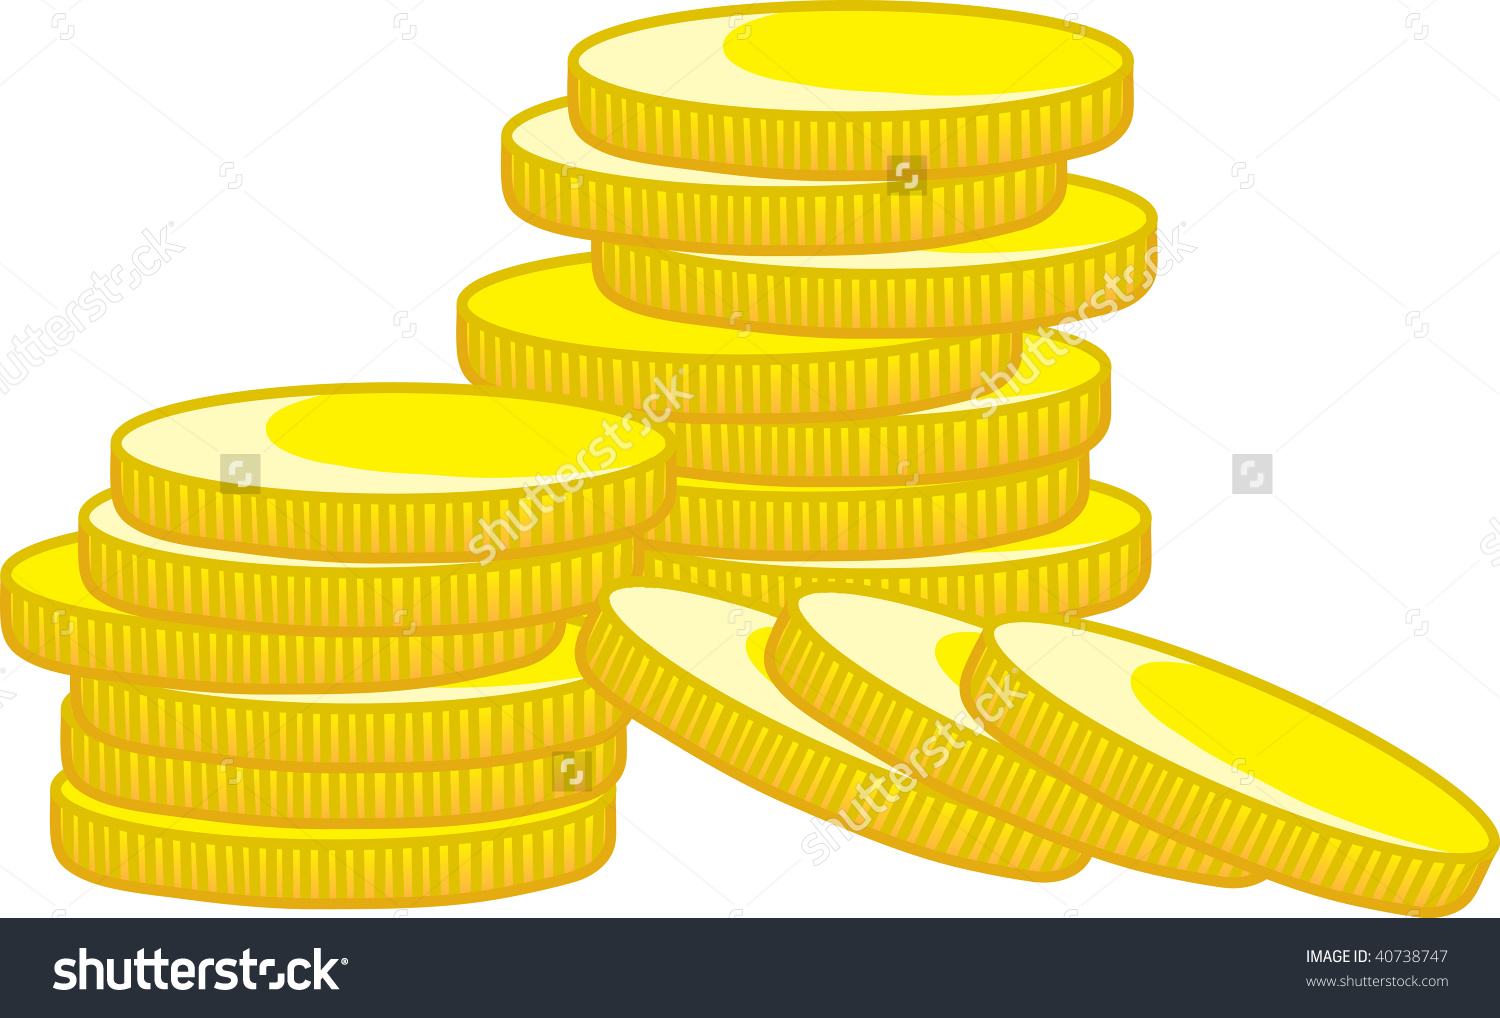 Coin clipart stack coin Stack coins Gold stack of